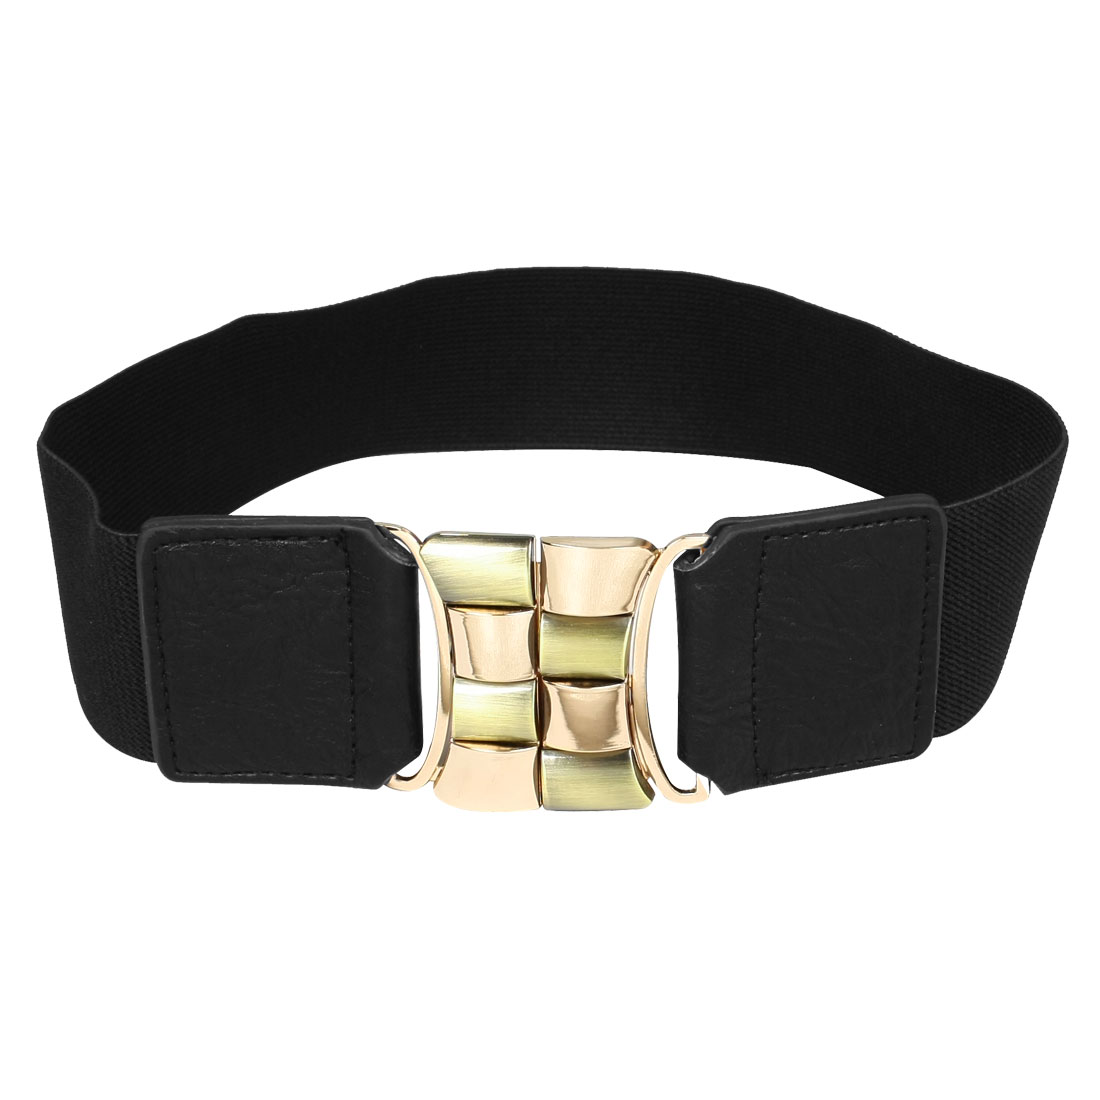 Black 5cm Wide Cinch Metal Interlocking Buckle Waist Belt for Ladies